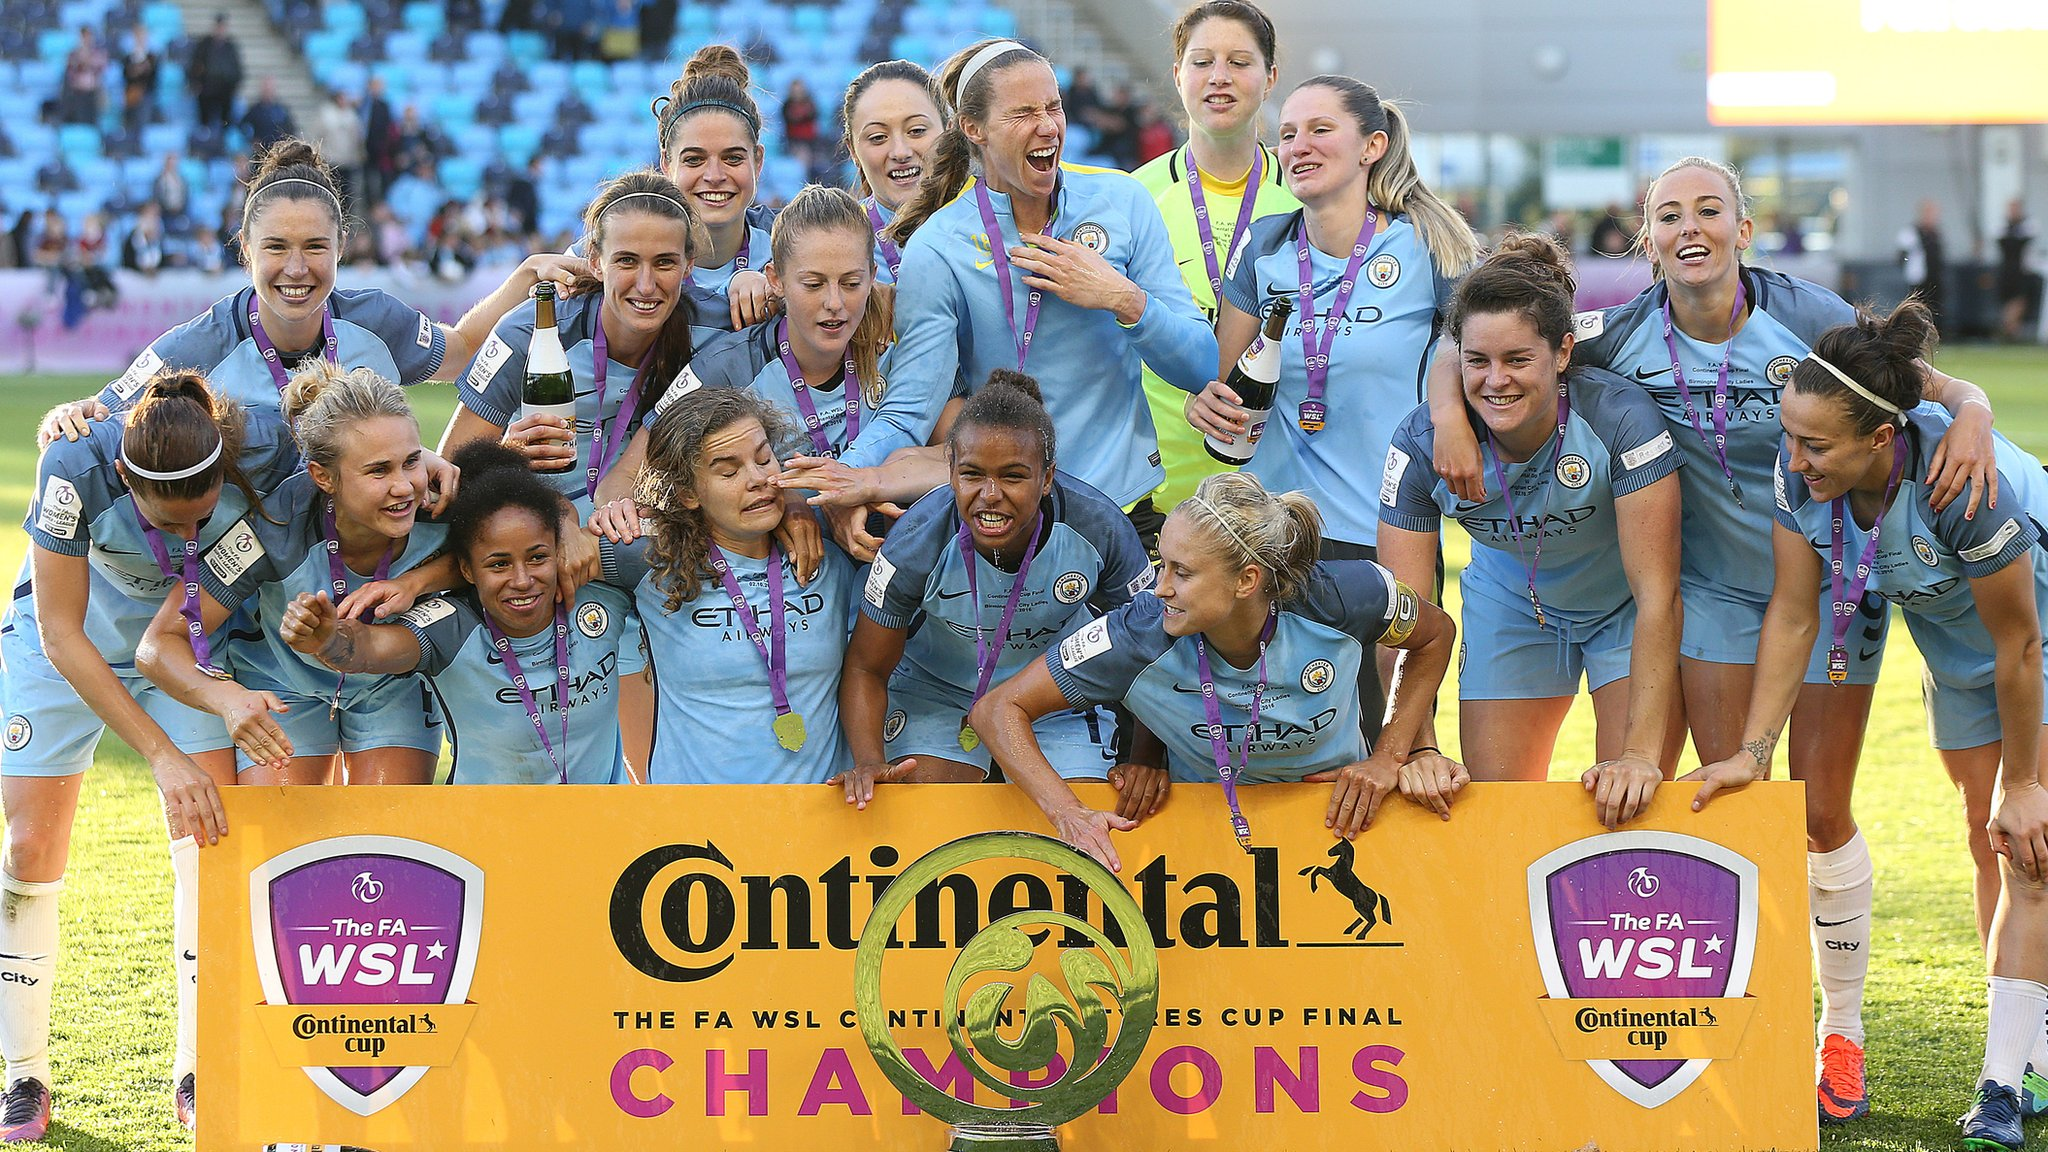 Continental Tyres Cup: Manchester City face Bristol City, Chelsea host Liverpool